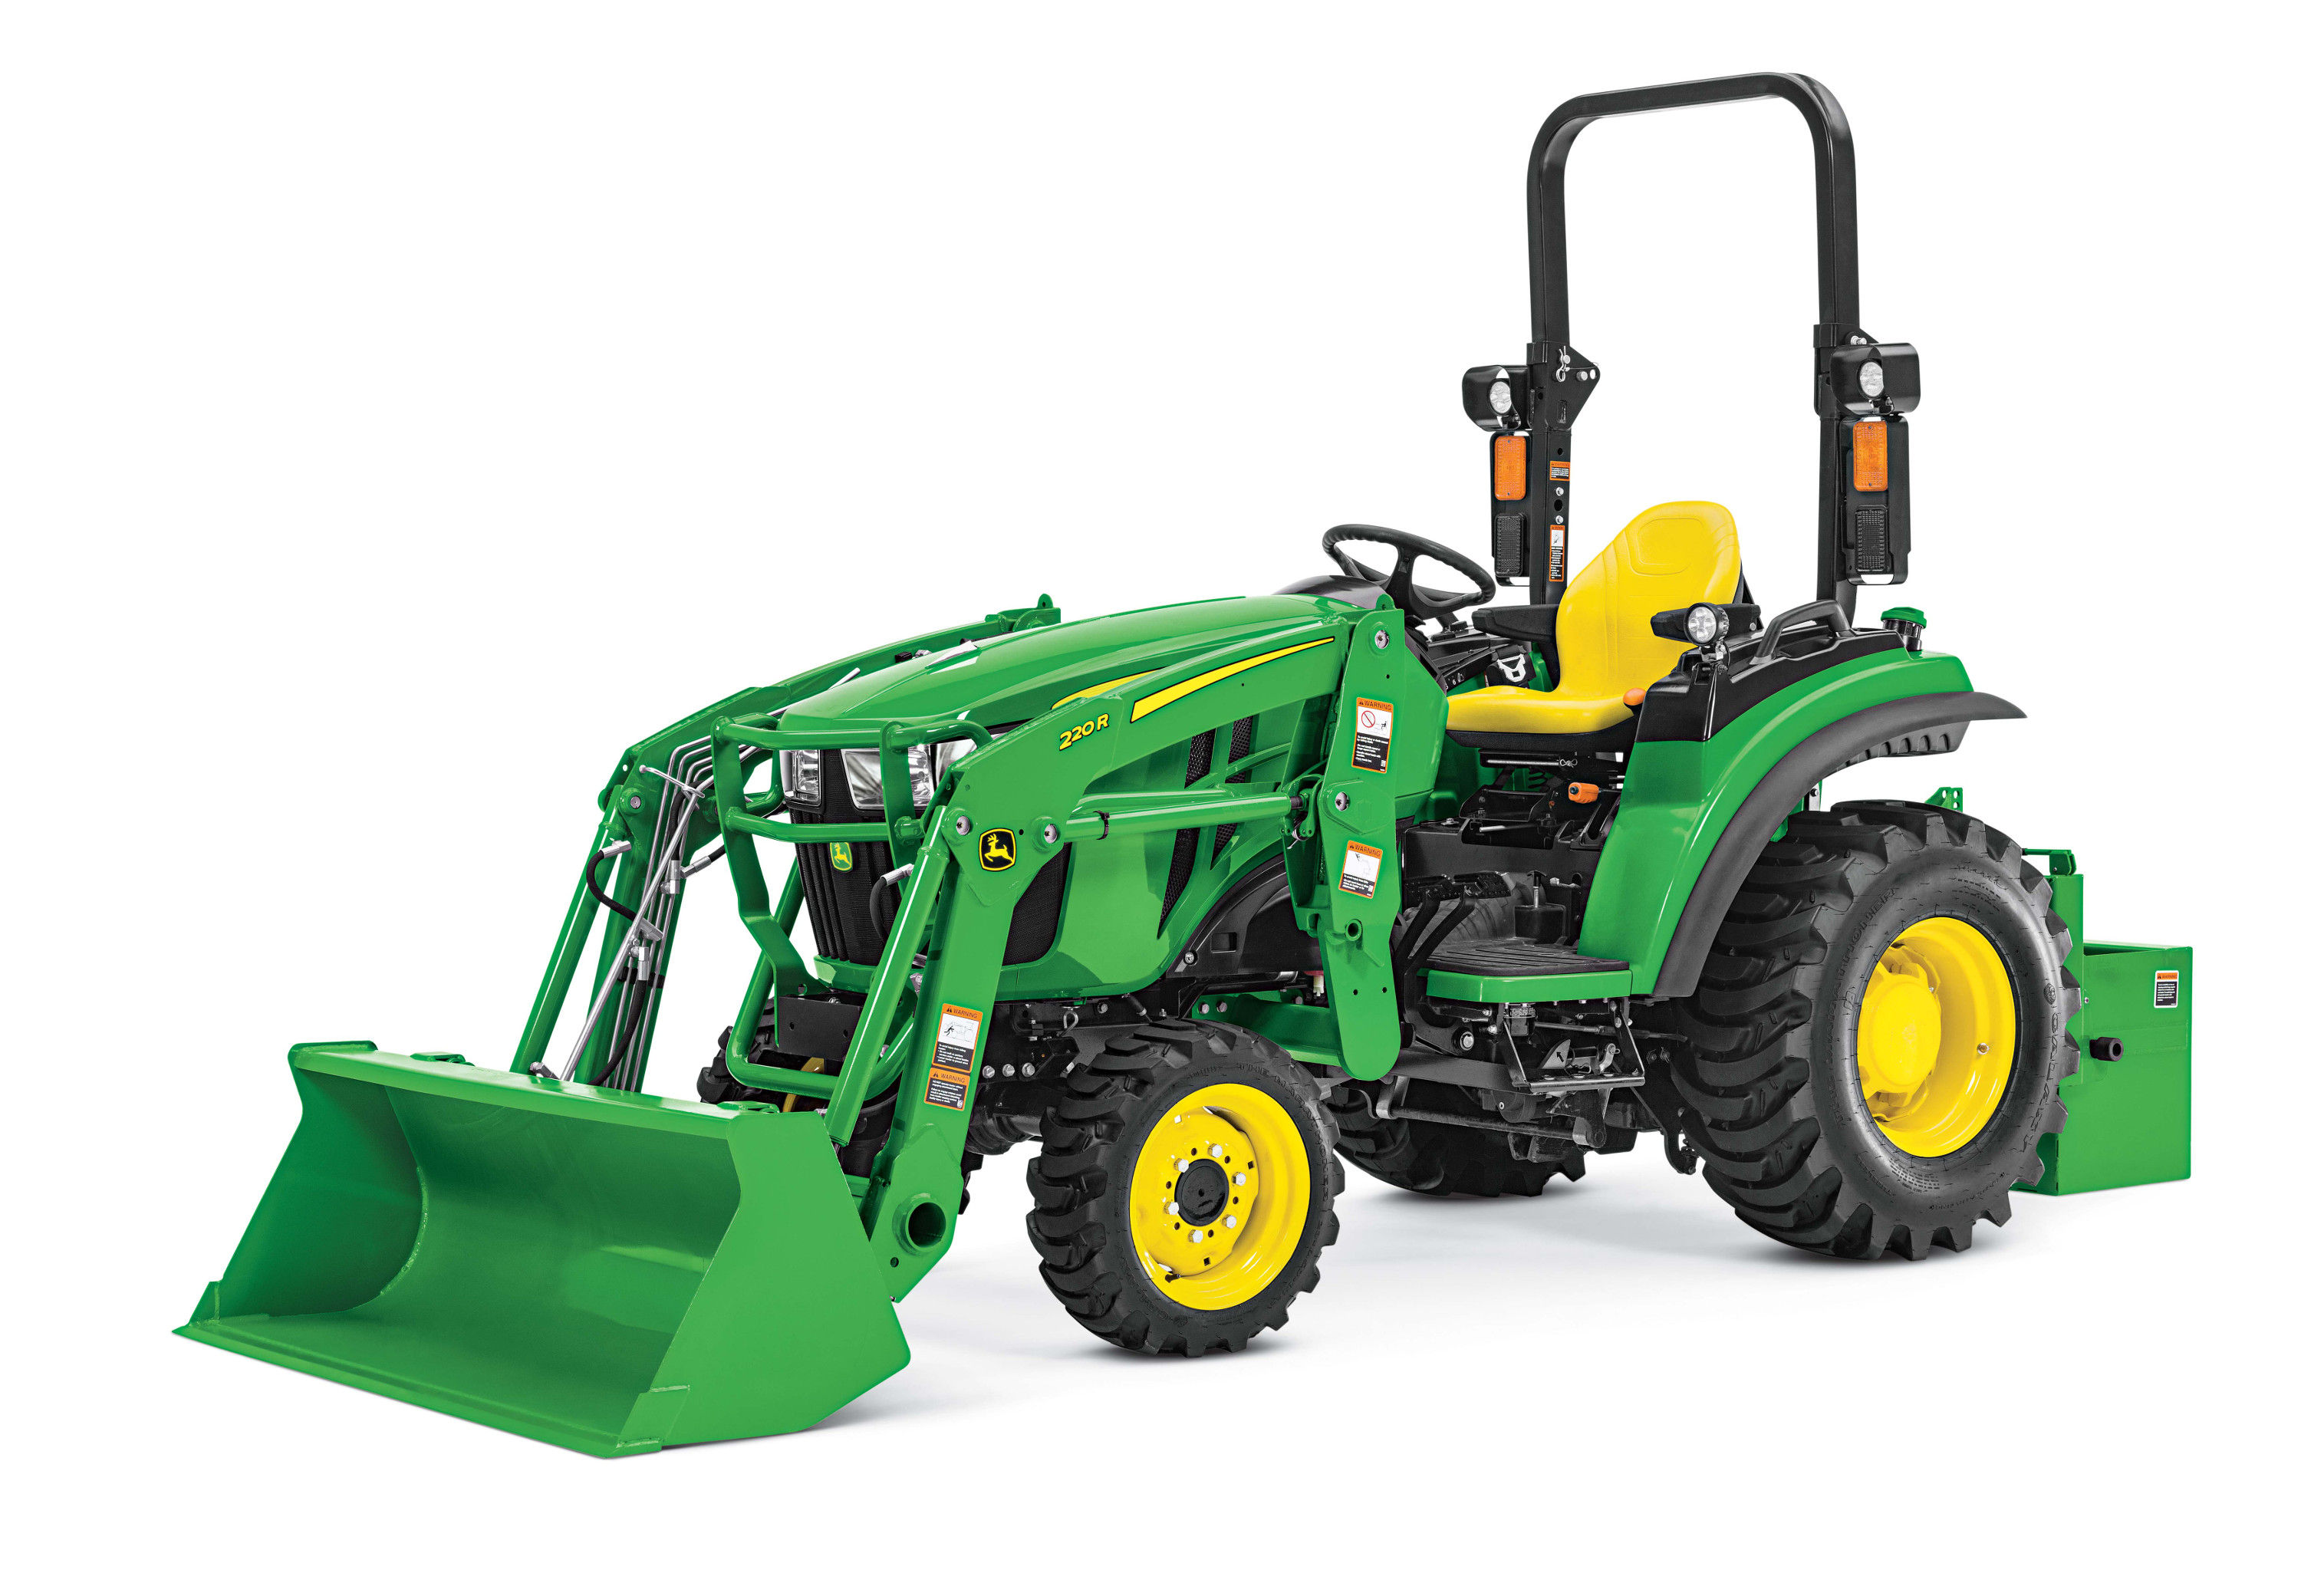 New 2R Series Compact Utility Tractors | John Deere US